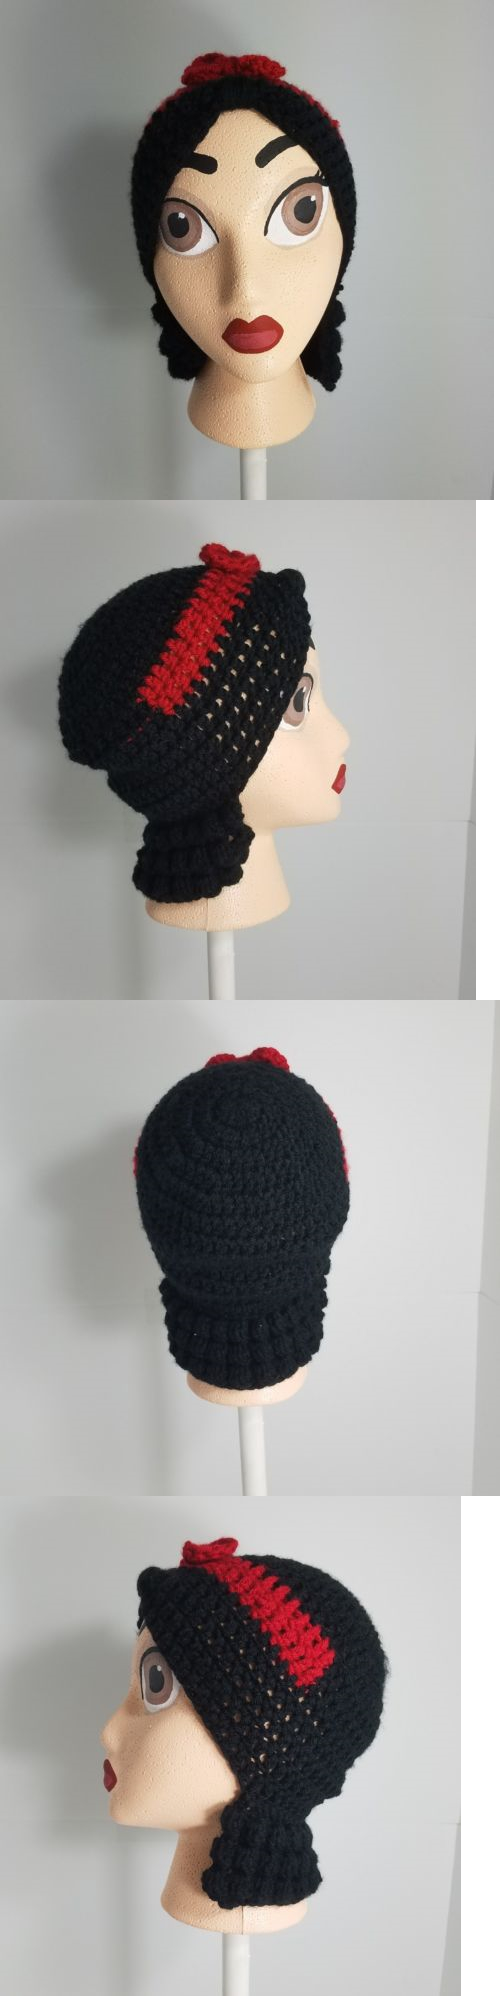 Hats 15630: Handmade Crochet Disney Snow White Inspired Wig Beanie With Handpainted Head -> BUY IT NOW ONLY: $35 on eBay!